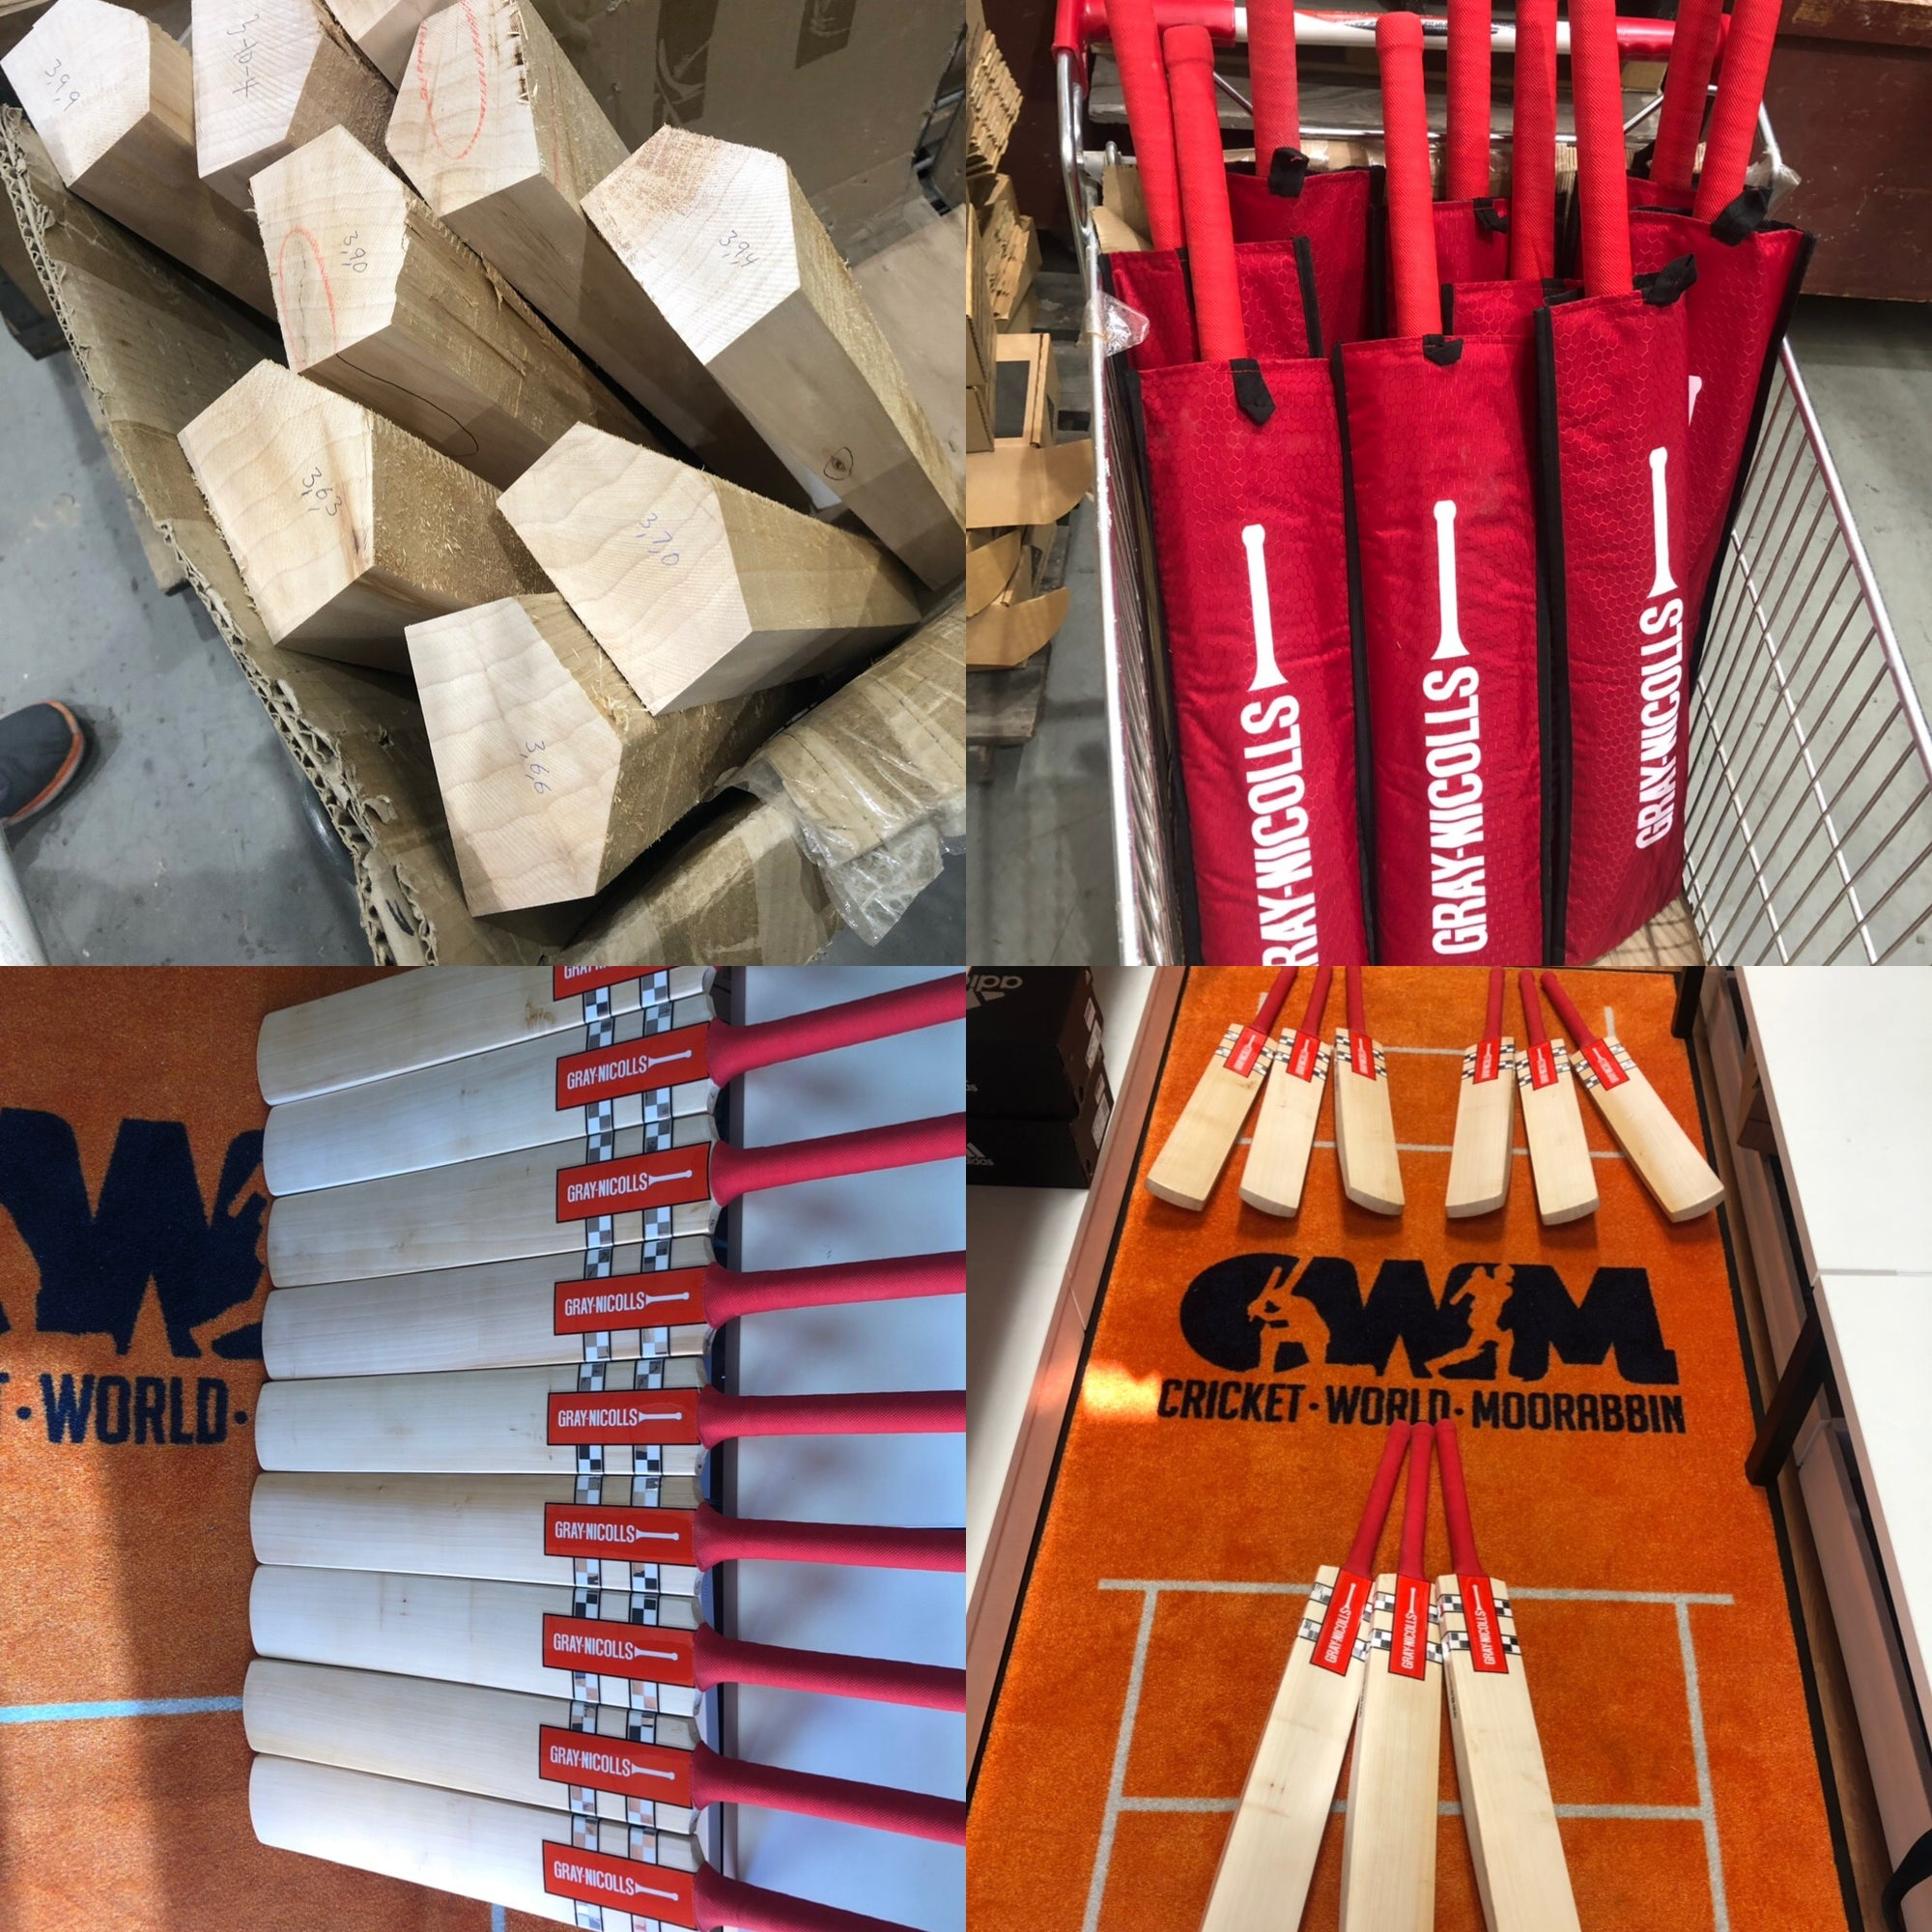 Heard about our Bat Fitting Experience?